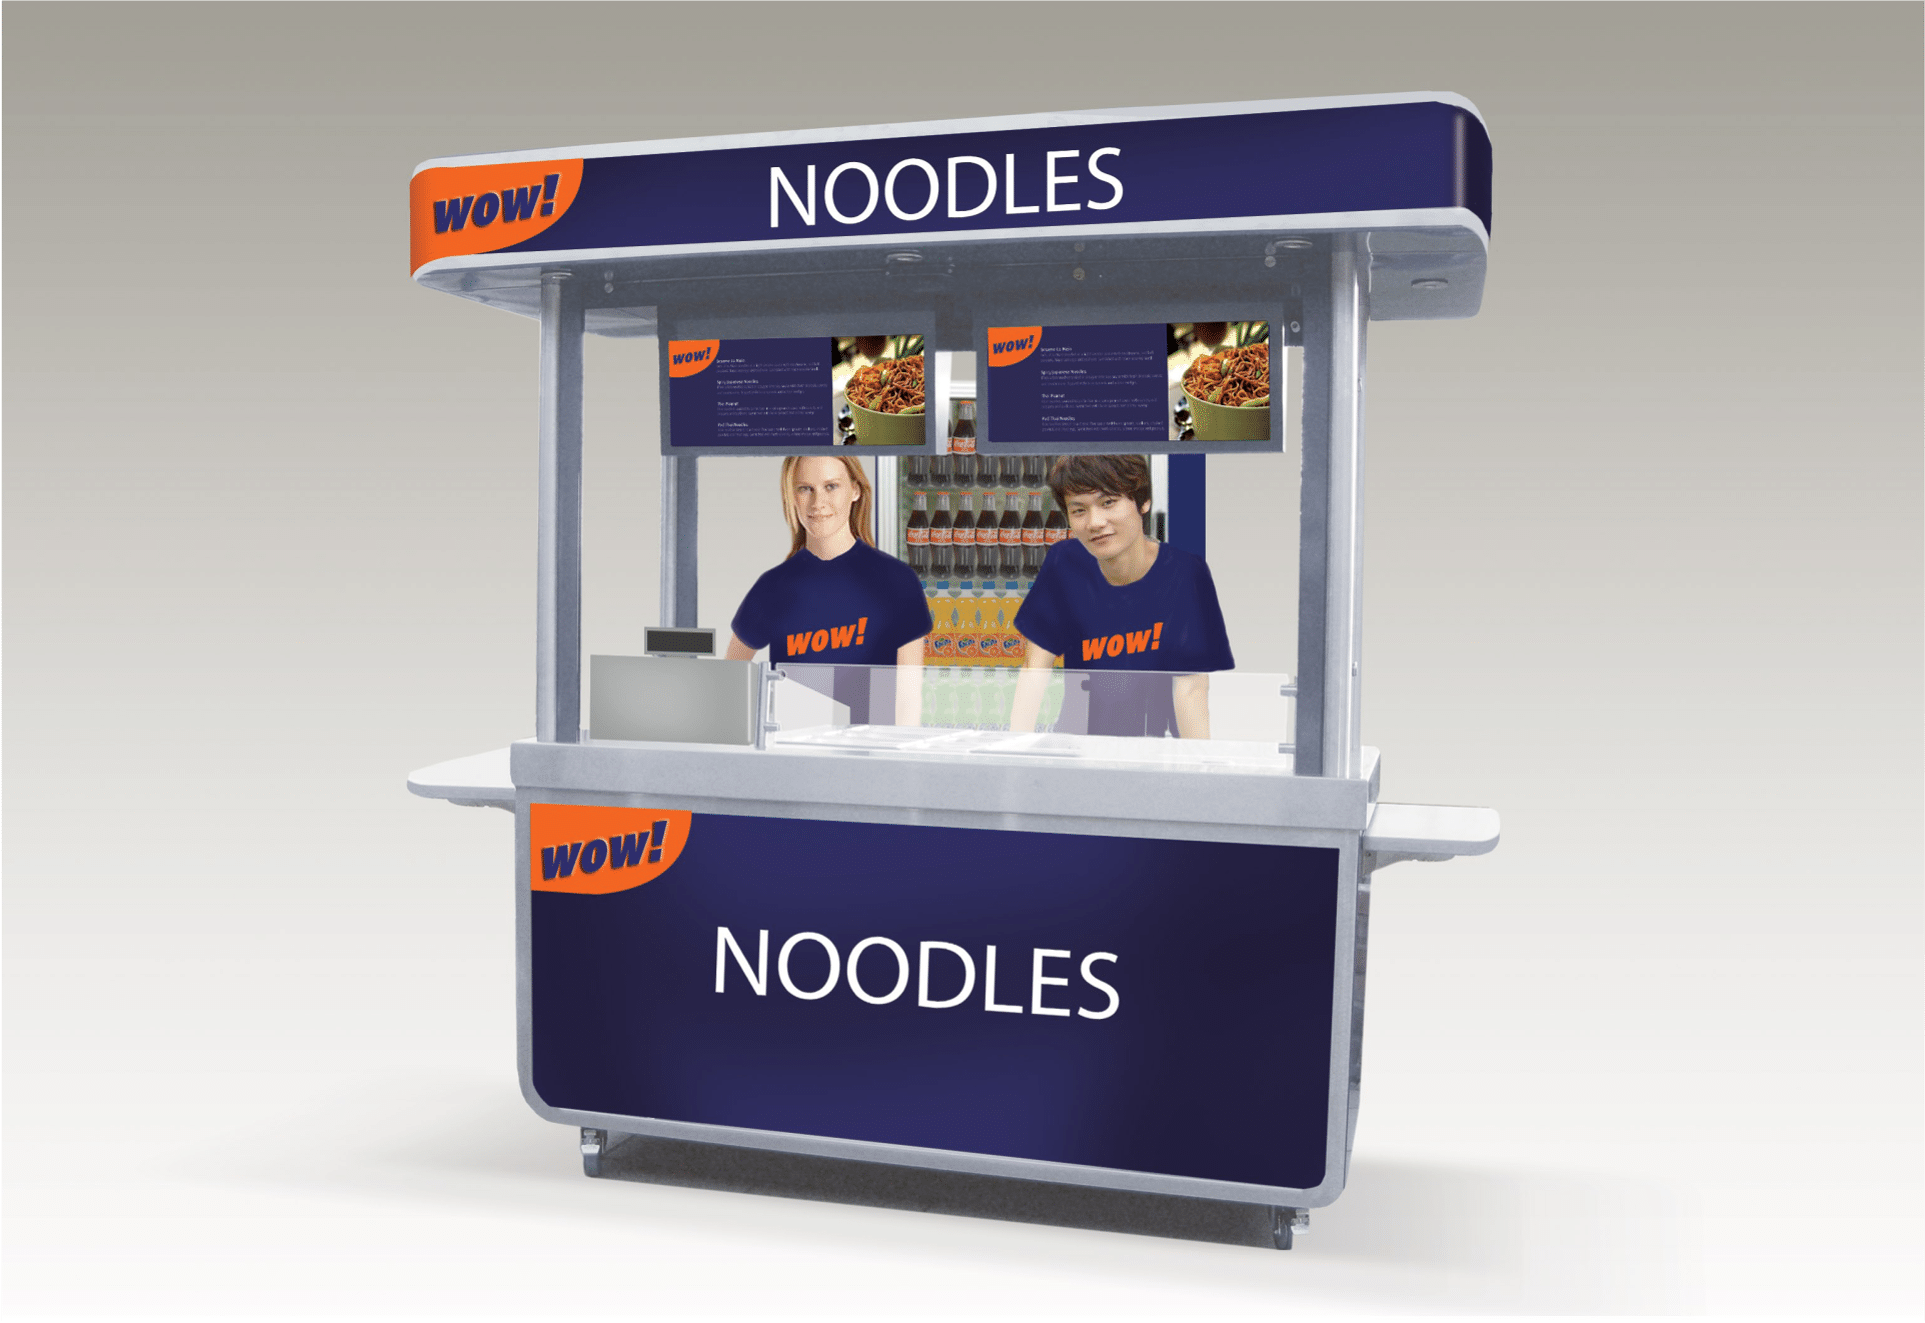 <p>Bespoke Products – Mobile Carts – Food Cart – Custom Design – Wow Noodles Bar – Concept Design</p> <p></p> <p>Stylish, eloquent & custom-made Mobile Food Cart visual image of custom-built noodle bar.</p> <p></p> <p>Designed to meet the customer needs & objectives to include catering equipment as required for serving hot drinks, hot or cold food etc or whatever the customer requires to make their mobile food bar unique & exclusive to their brand</p> <p></p> <p>One example of a design. We can design and manufacture to meet customer's specific objectives</p>